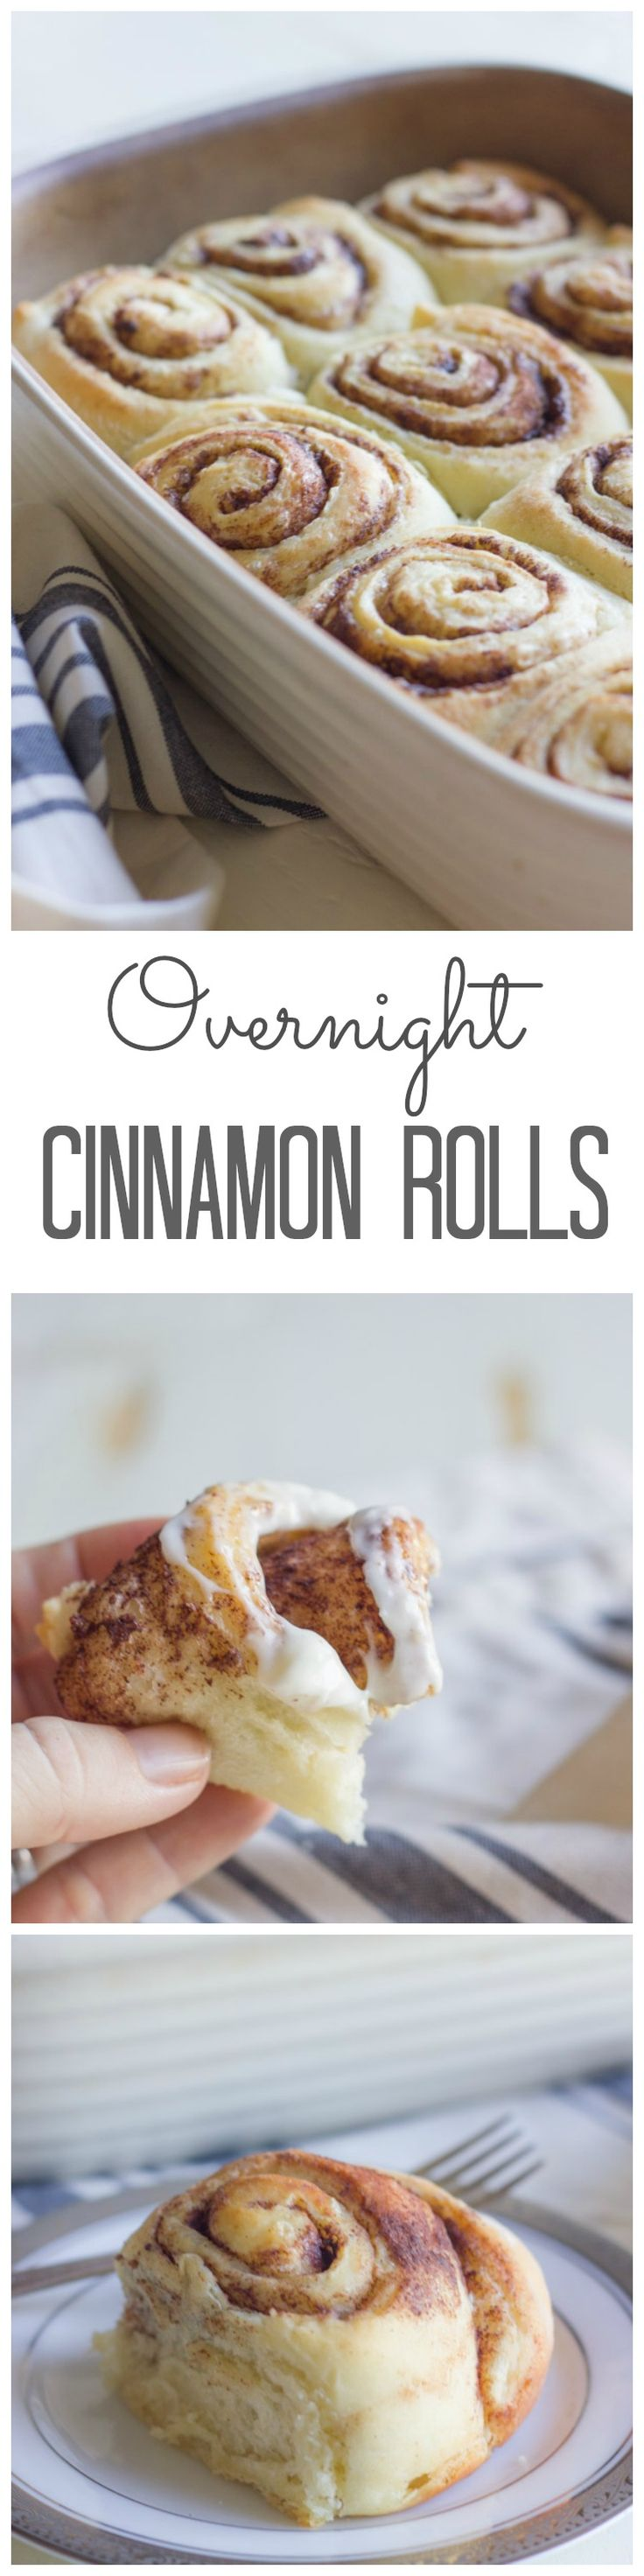 Cinnamon Rolls Make these the night before and bake them first thing in the morning.